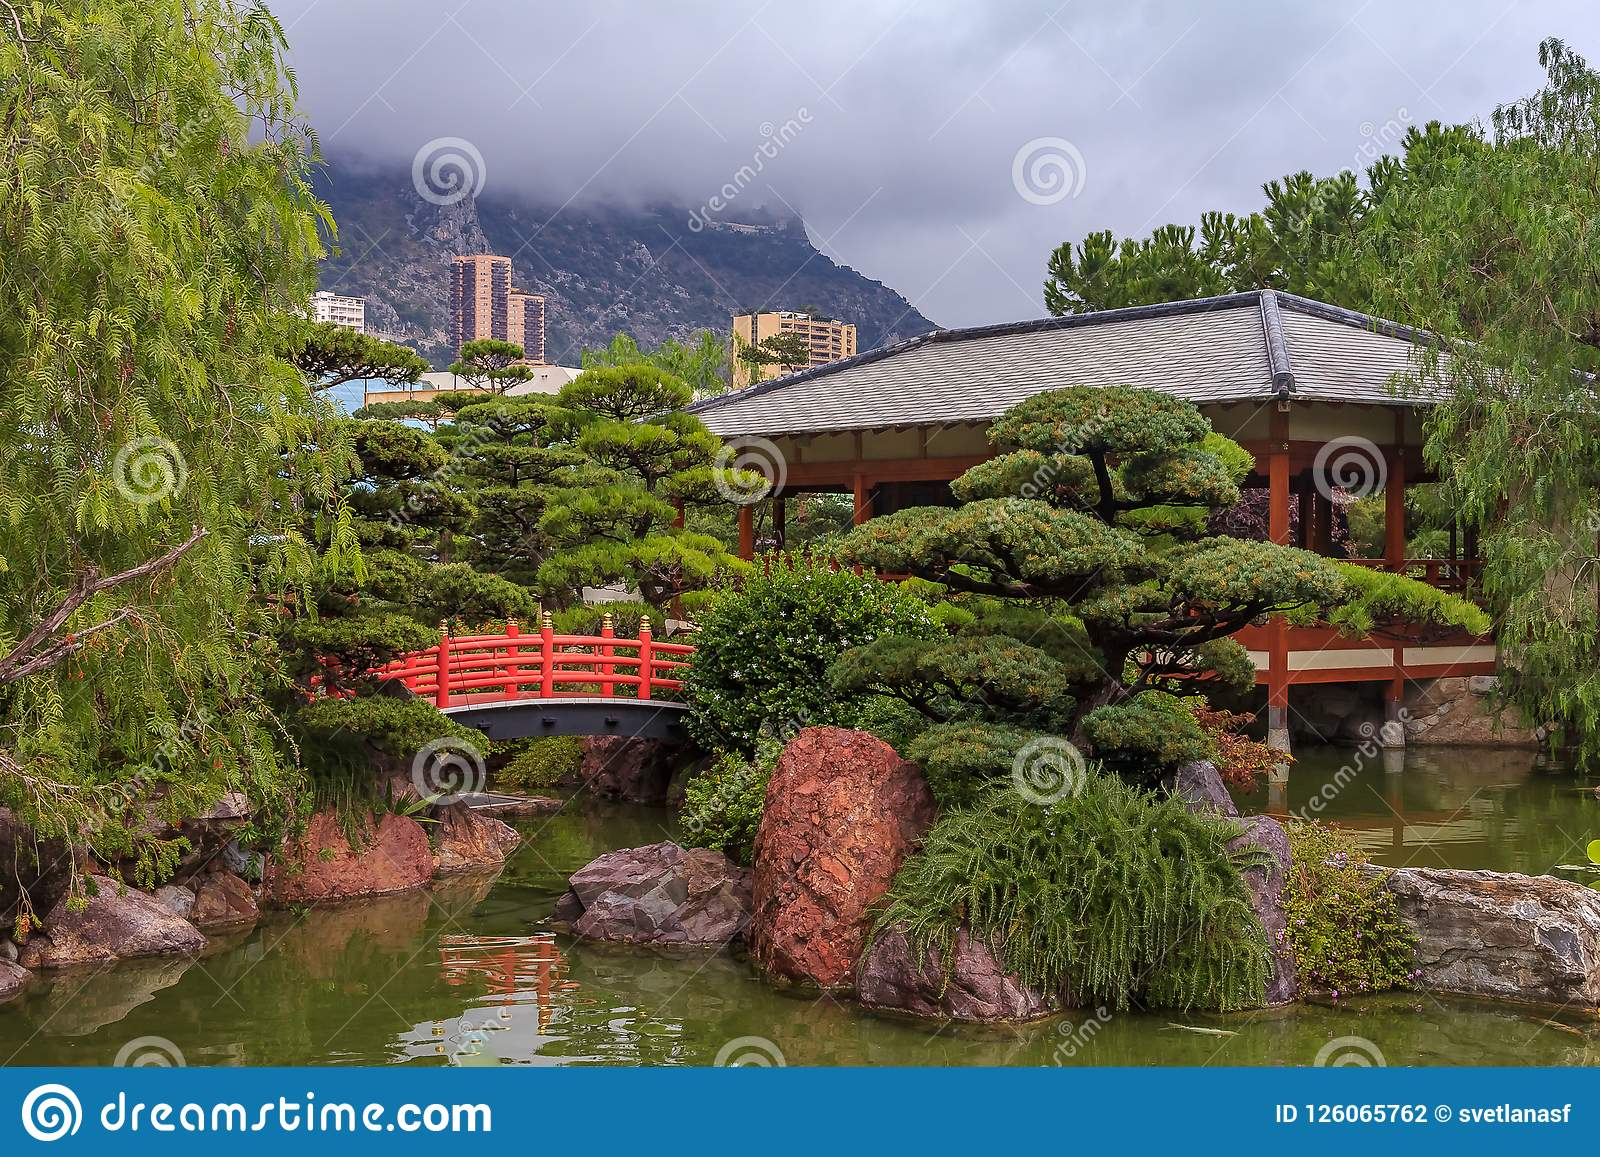 Japanese Garden Or Jardin Japonais With Residential Buildings In